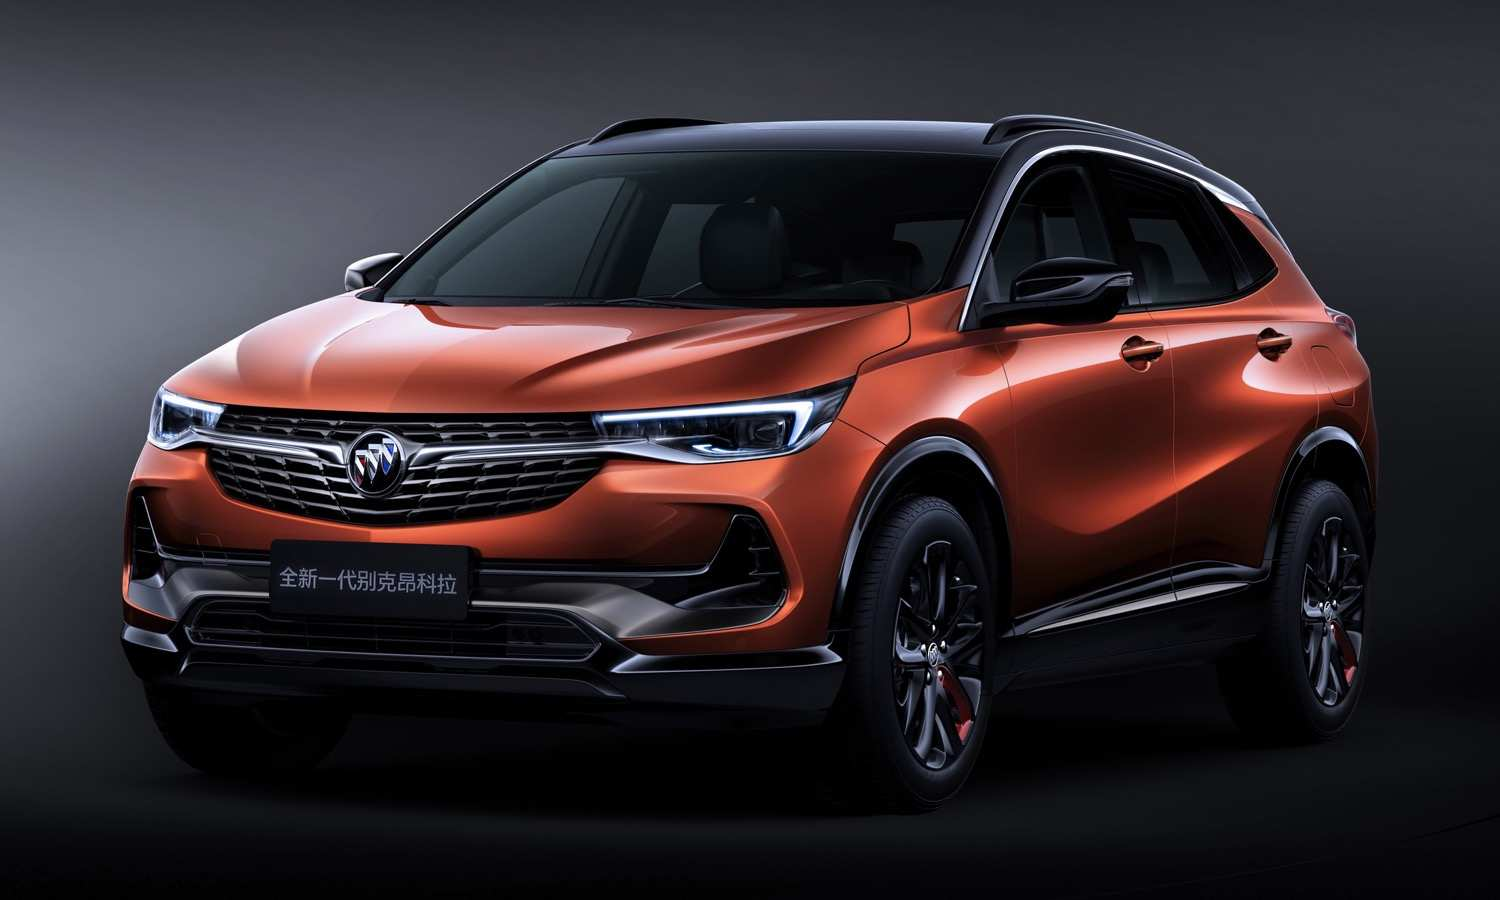 87 Gallery of 2020 Buick Encore Colors Model with 2020 Buick Encore Colors